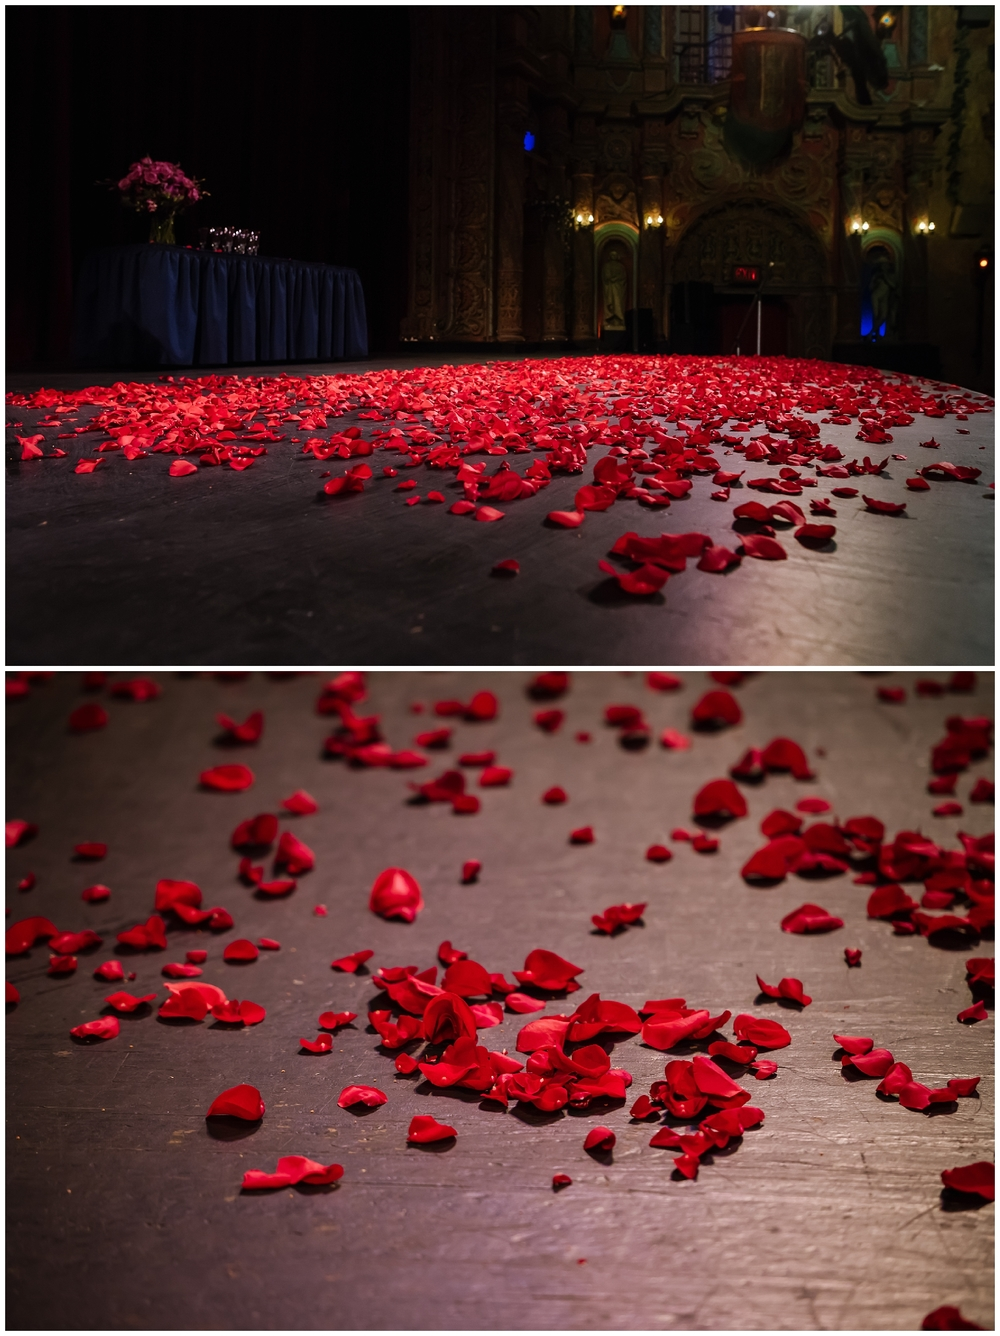 tampa-theater-romantic-surprise-proposal-red-roses-photographer_0001.jpg